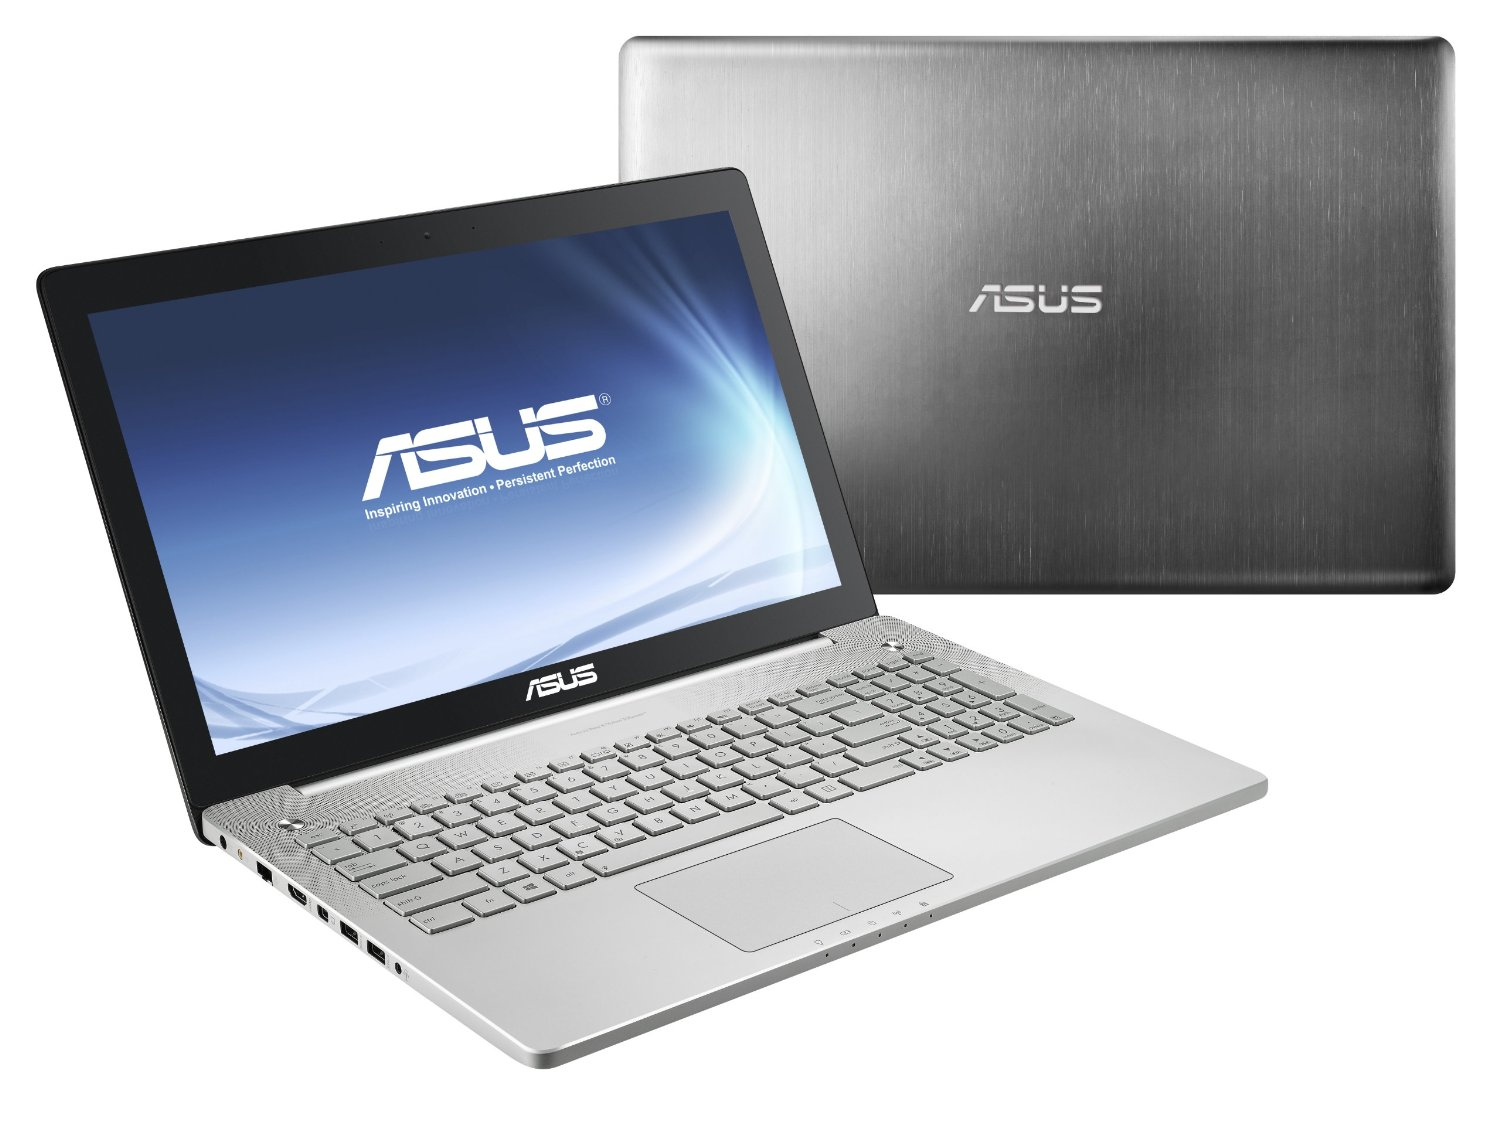 asus n550jk cm137h test complet ordinateur portable les num riques. Black Bedroom Furniture Sets. Home Design Ideas